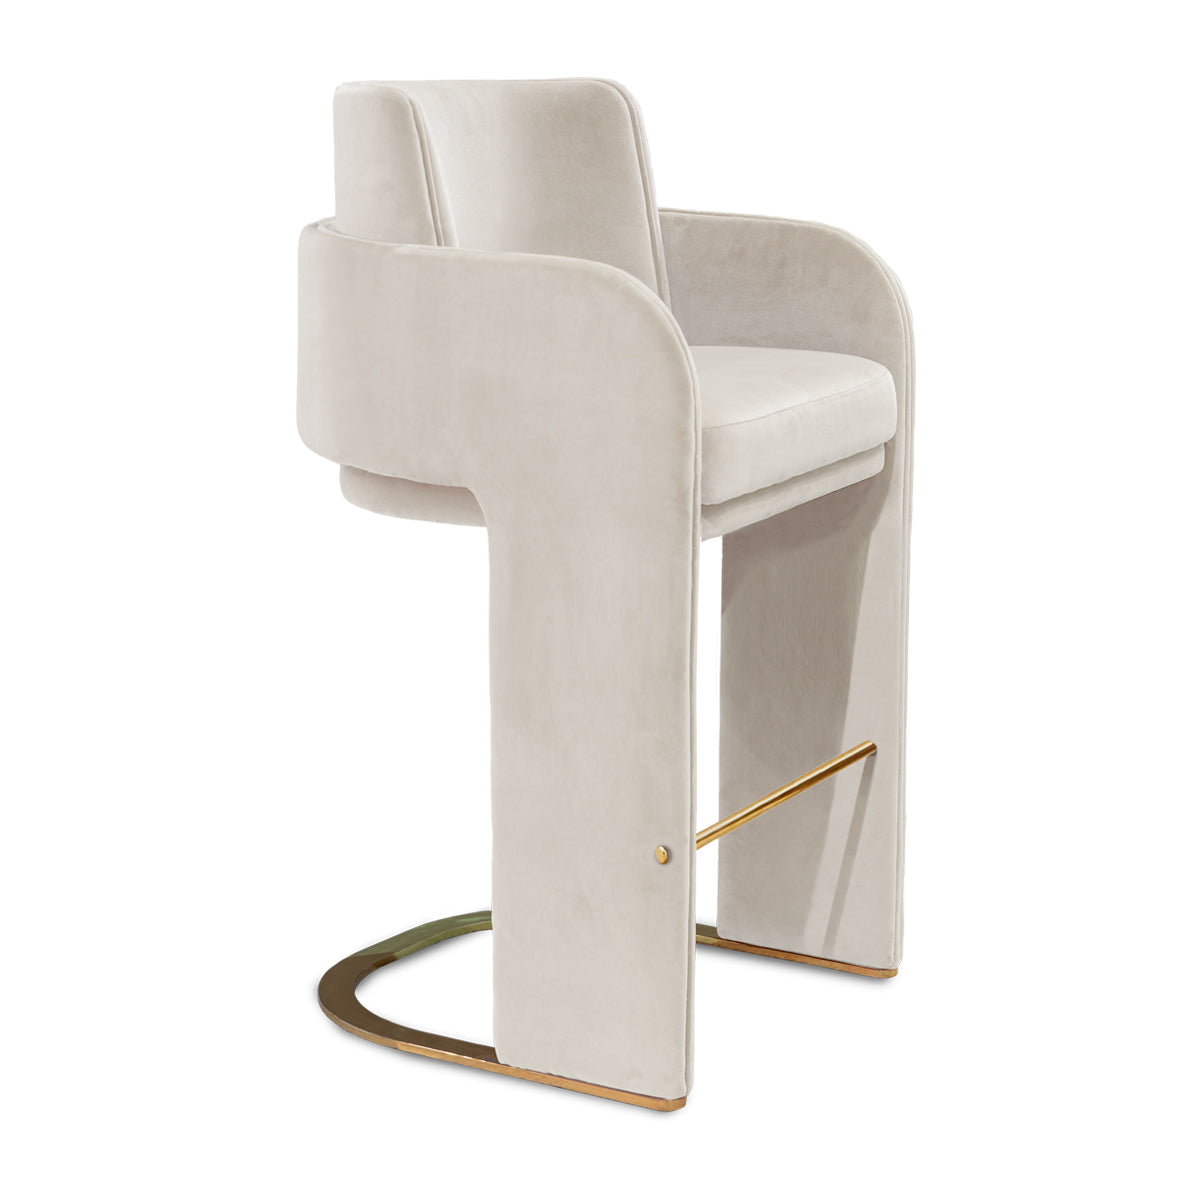 Odisseia Bar Chair by Dooq | Do Shop